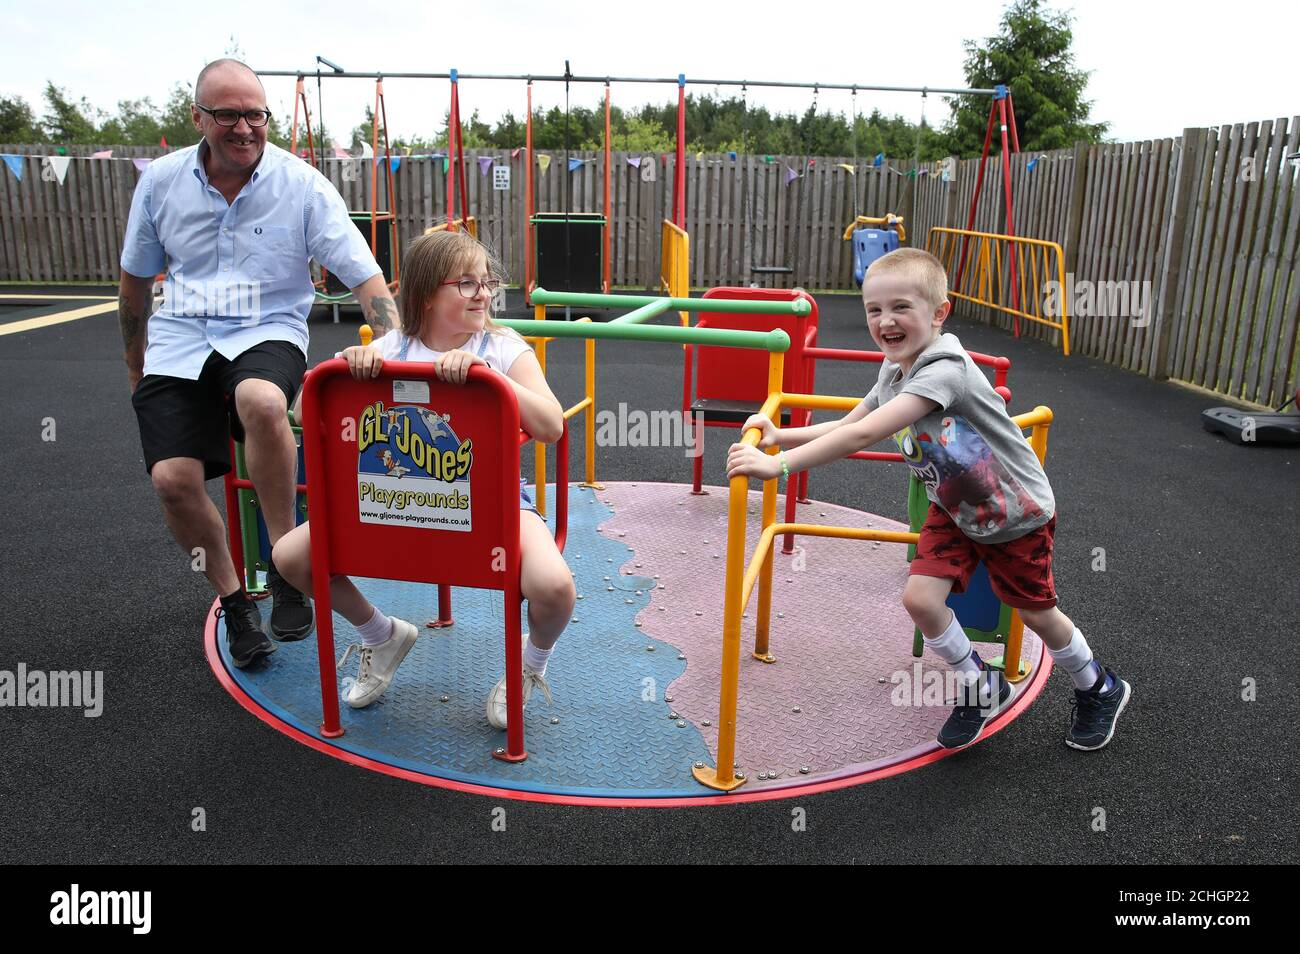 Embargoed to 0001 Monday June 22 Callum McMichael pushes his sister Laura and father Barry on the roundabout in the outside therapy area at the Craighalbert Centre. Coronavirus adaptations have been installed at the Scottish Centre for Children with Motor Impairments, Craighalbert Centre, Cumbernauld, as Scotland continues gradually lifting coronavirus lockdown measures. Stock Photo